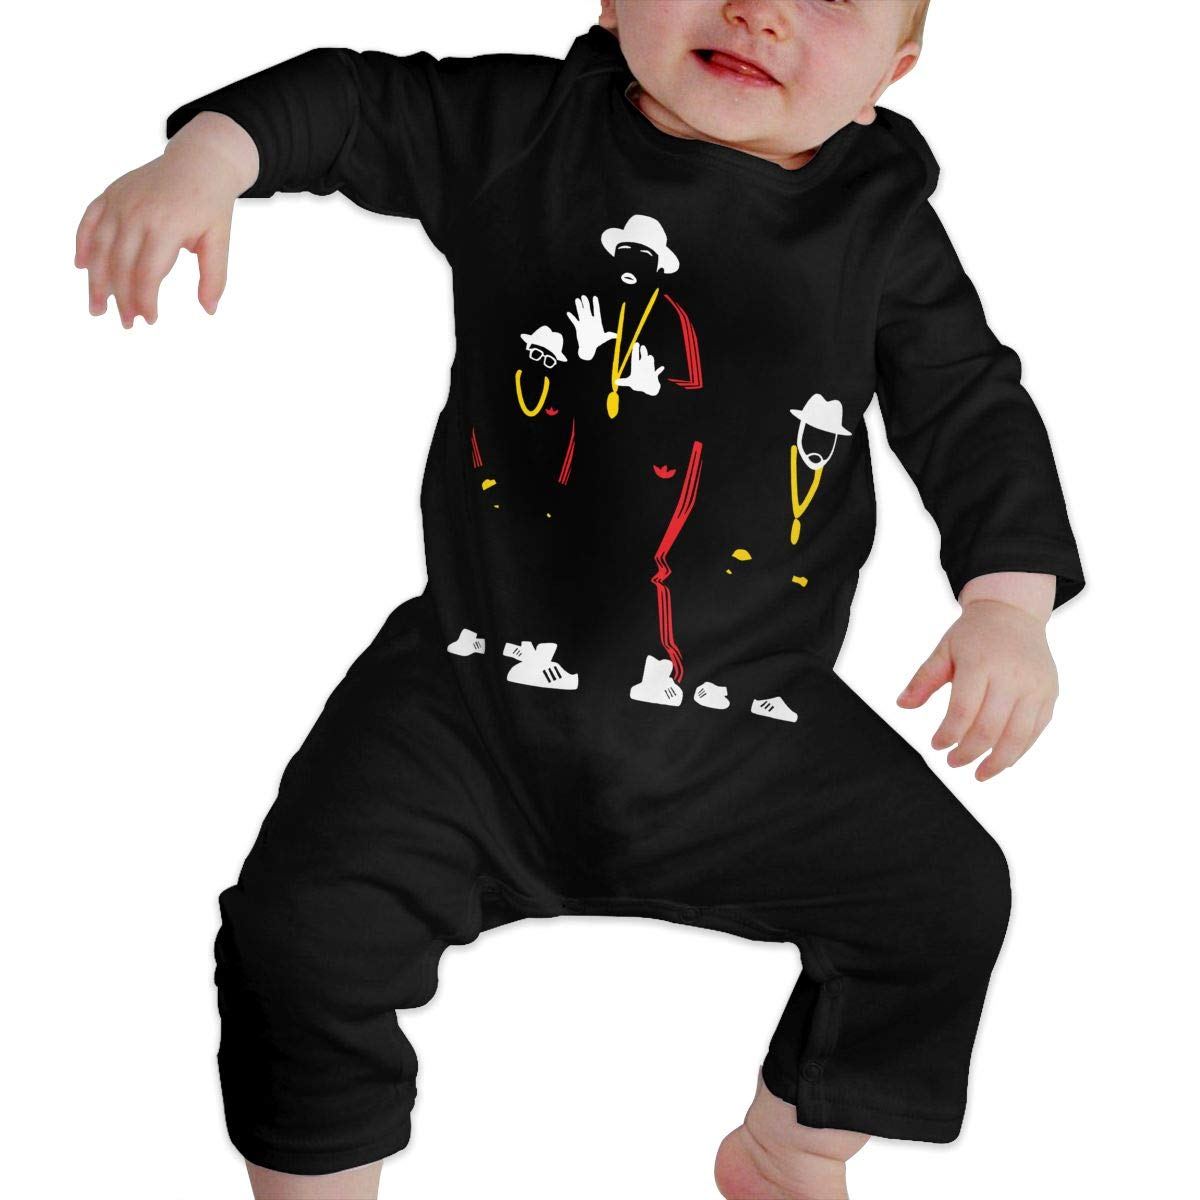 Nothing Better Than Hip Hop Music Newborn Baby Boy Girl Romper Jumpsuit Long Sleeve Bodysuit Overalls Outfits Clothes